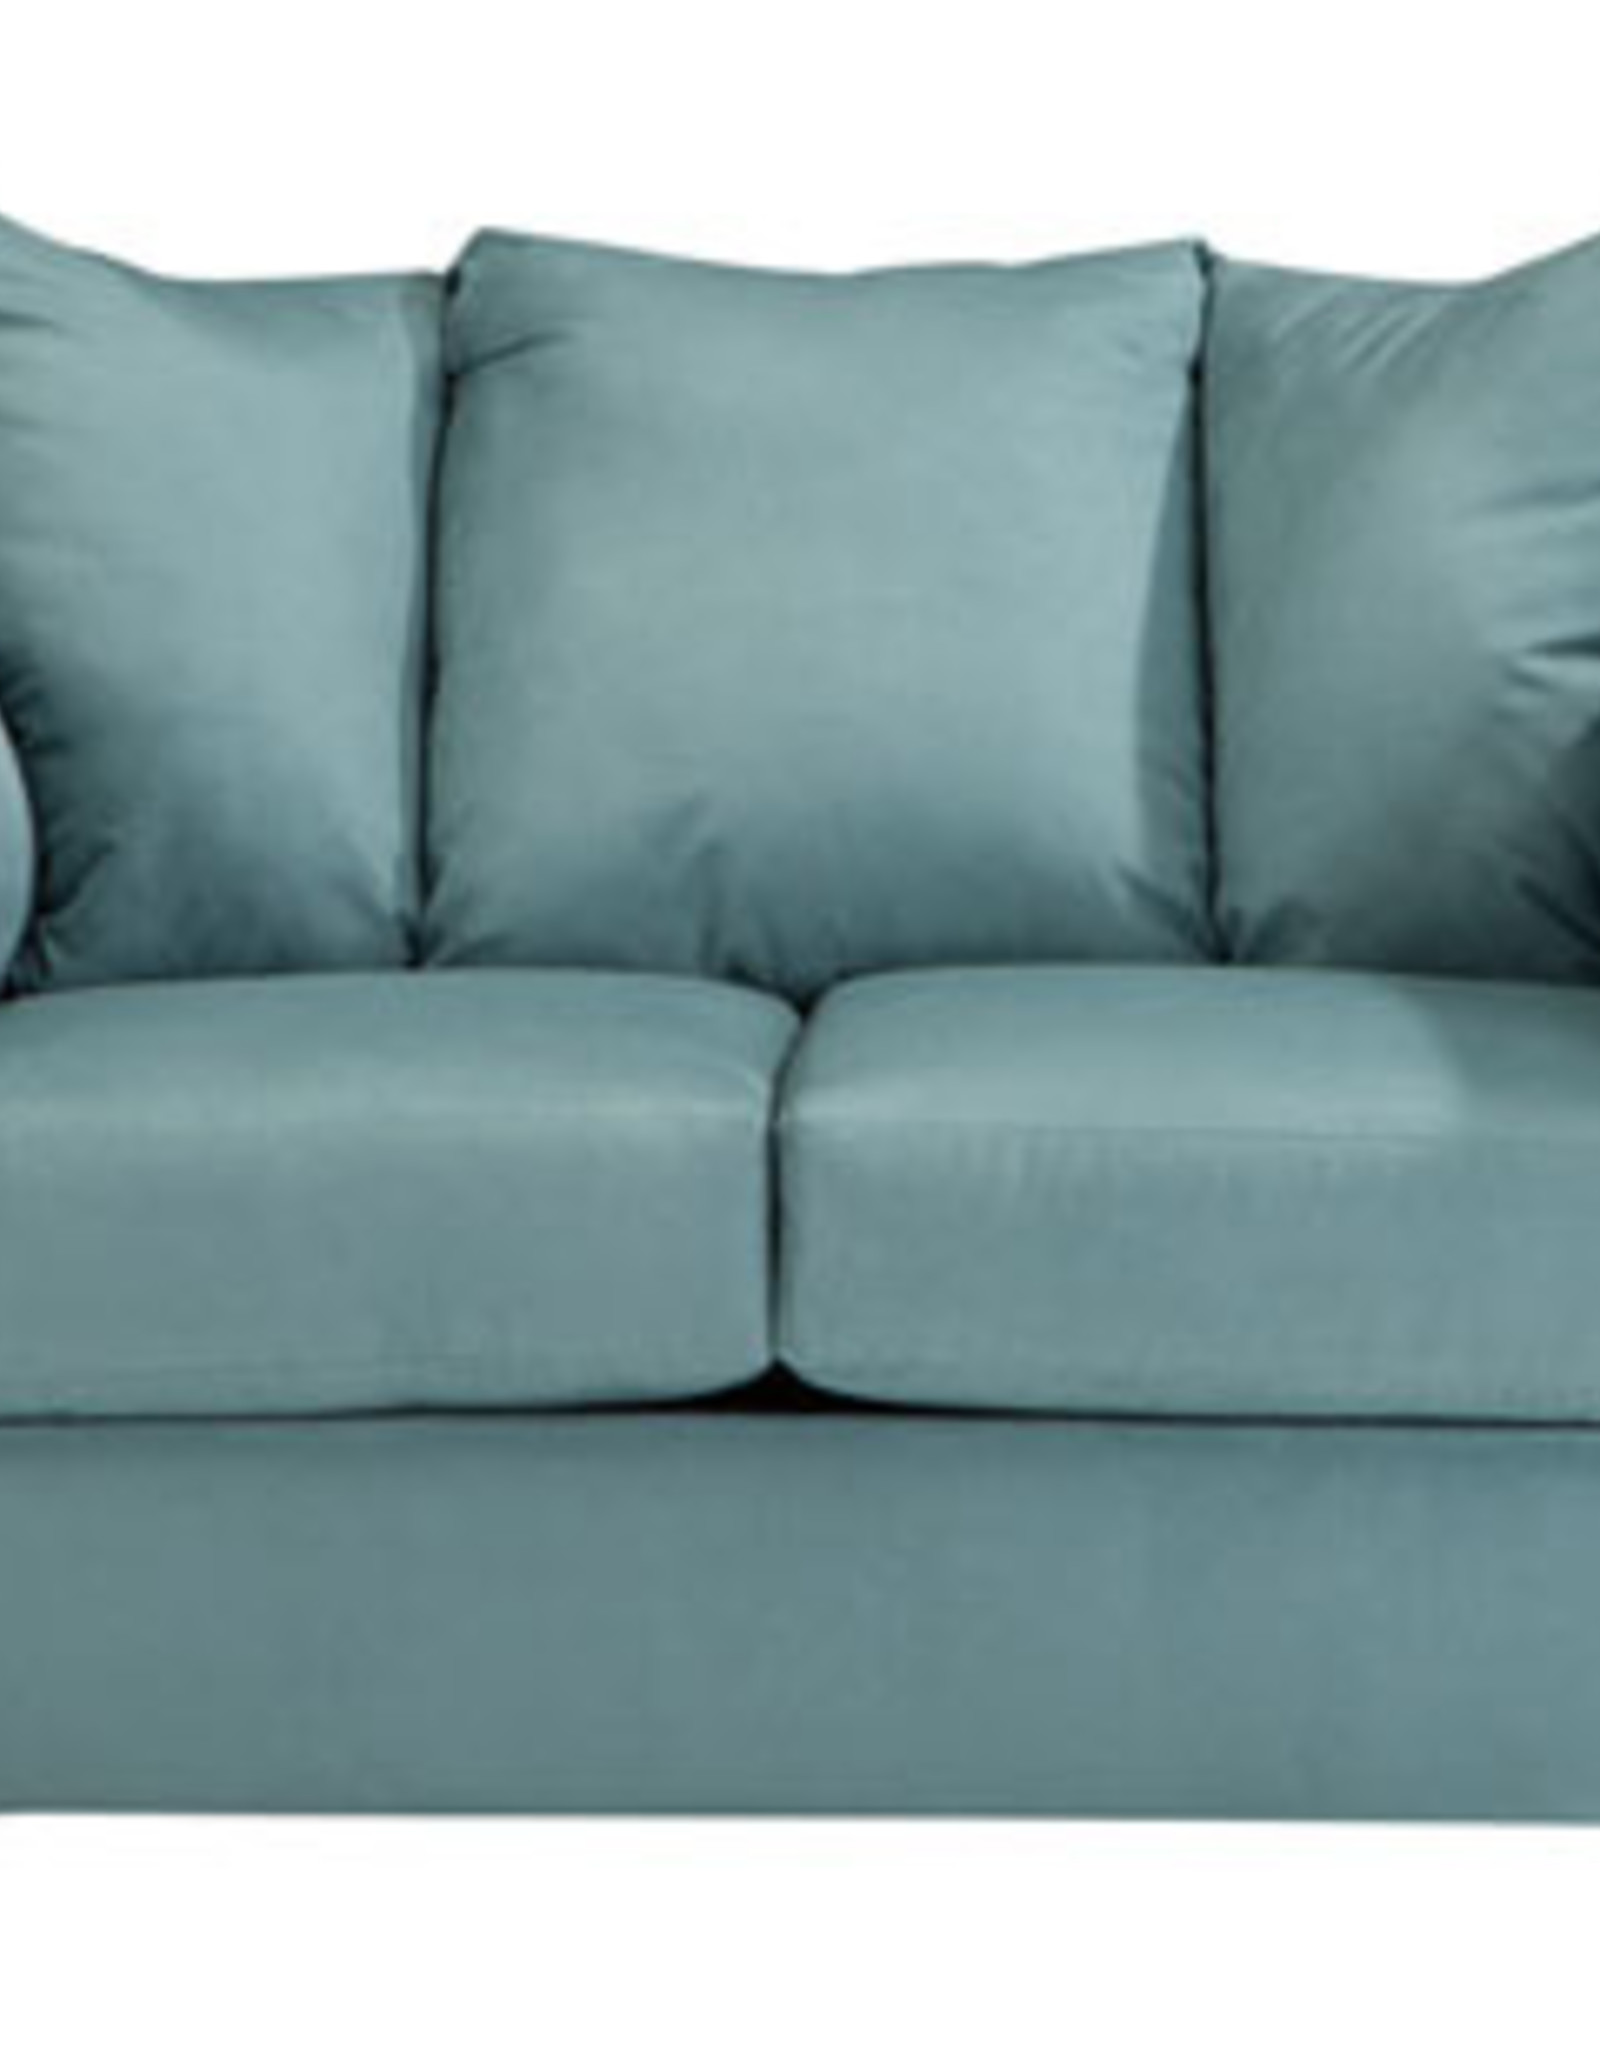 Darcy Loveseat (Sky) Displayed in Showroom in Salsa